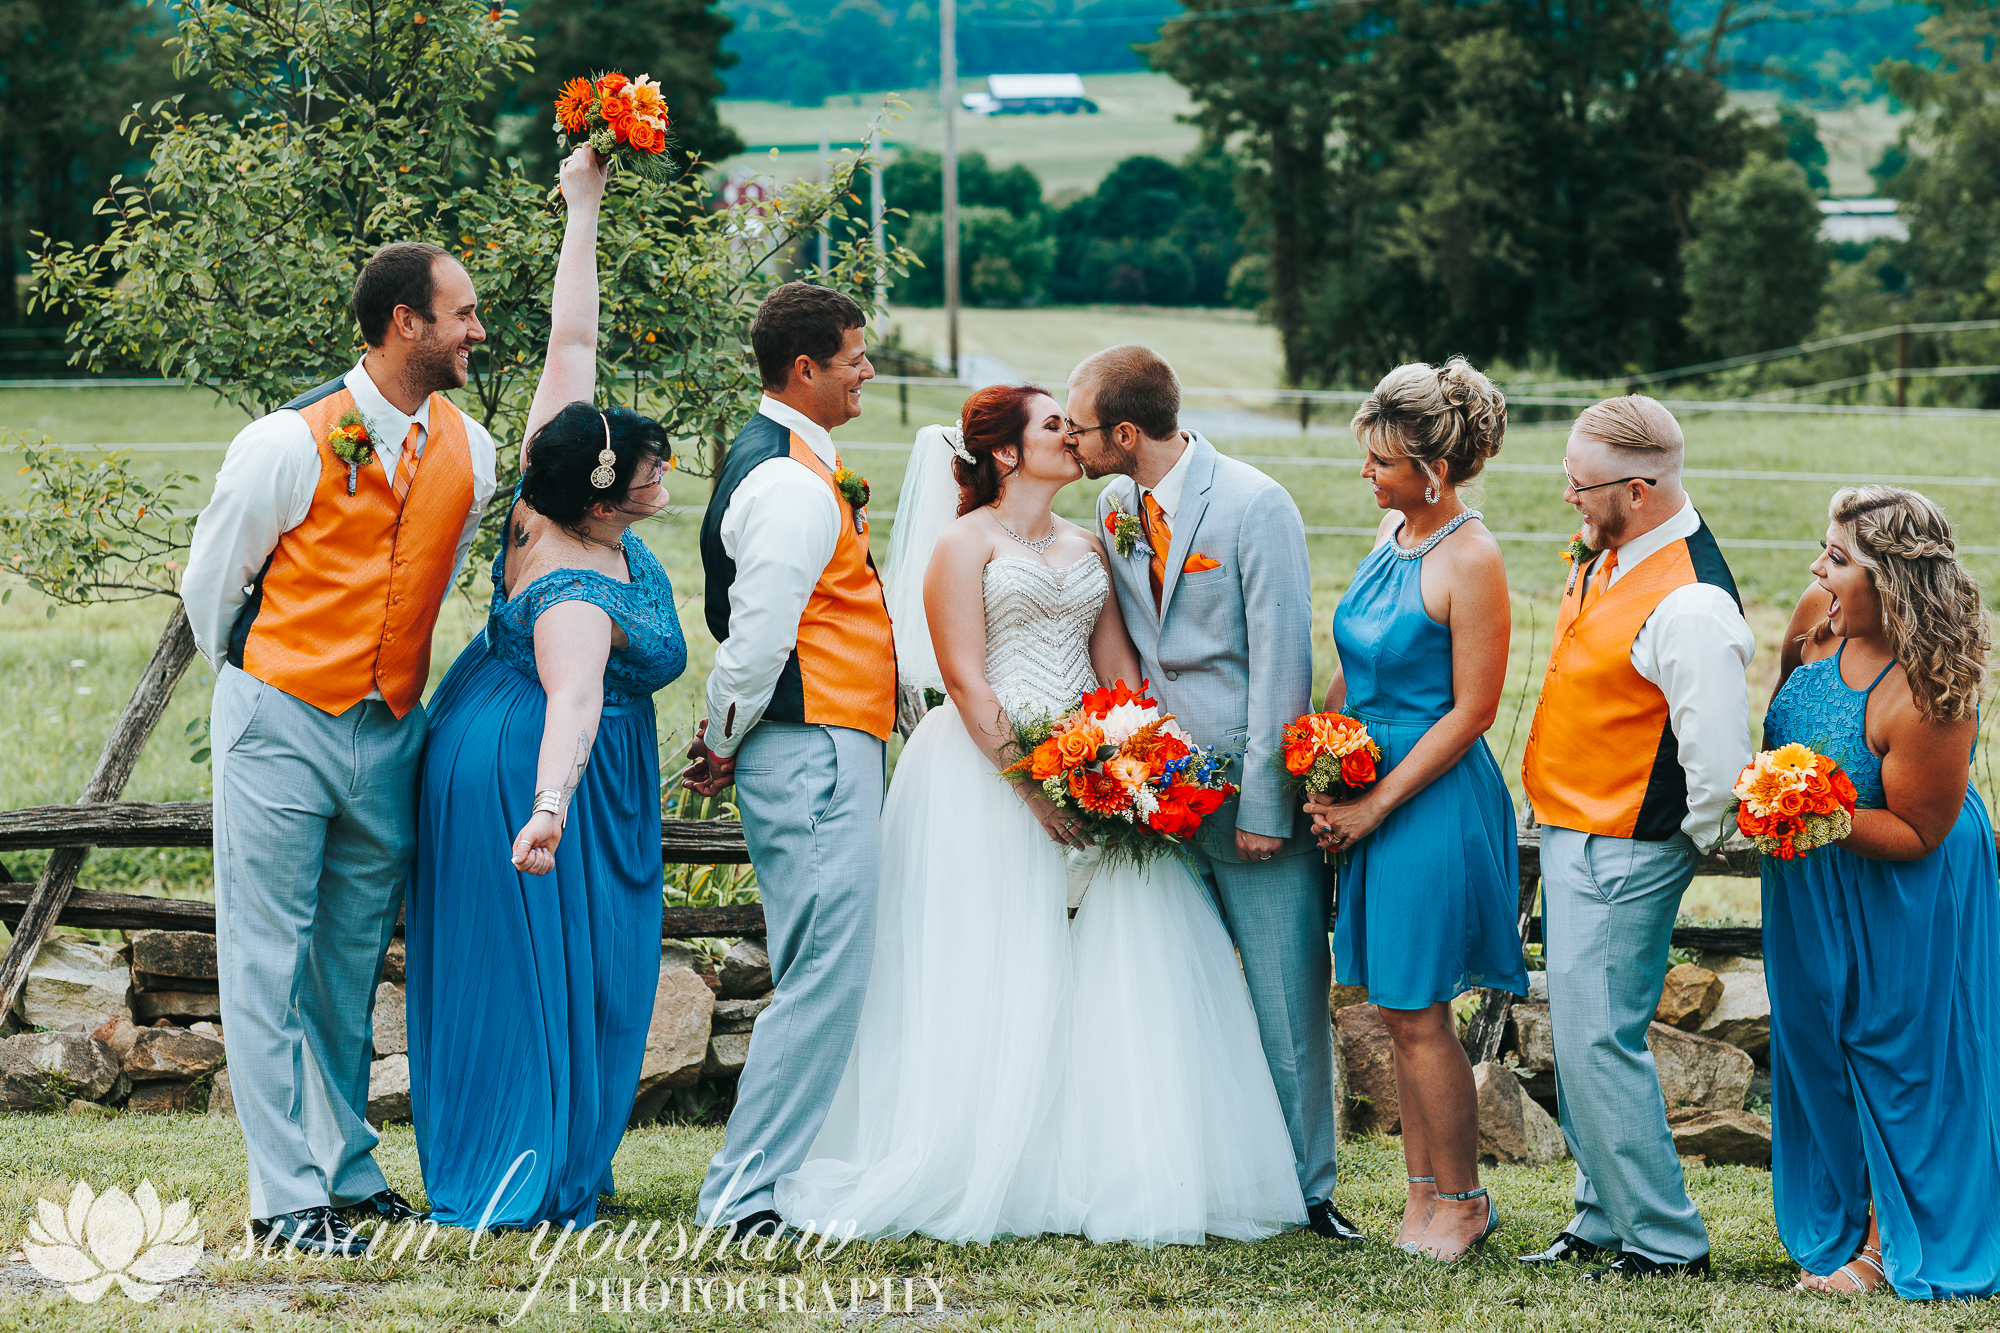 BLOG Kelly and DJ Roberts 08-25-2018 SLY Photography LLC-90.jpg